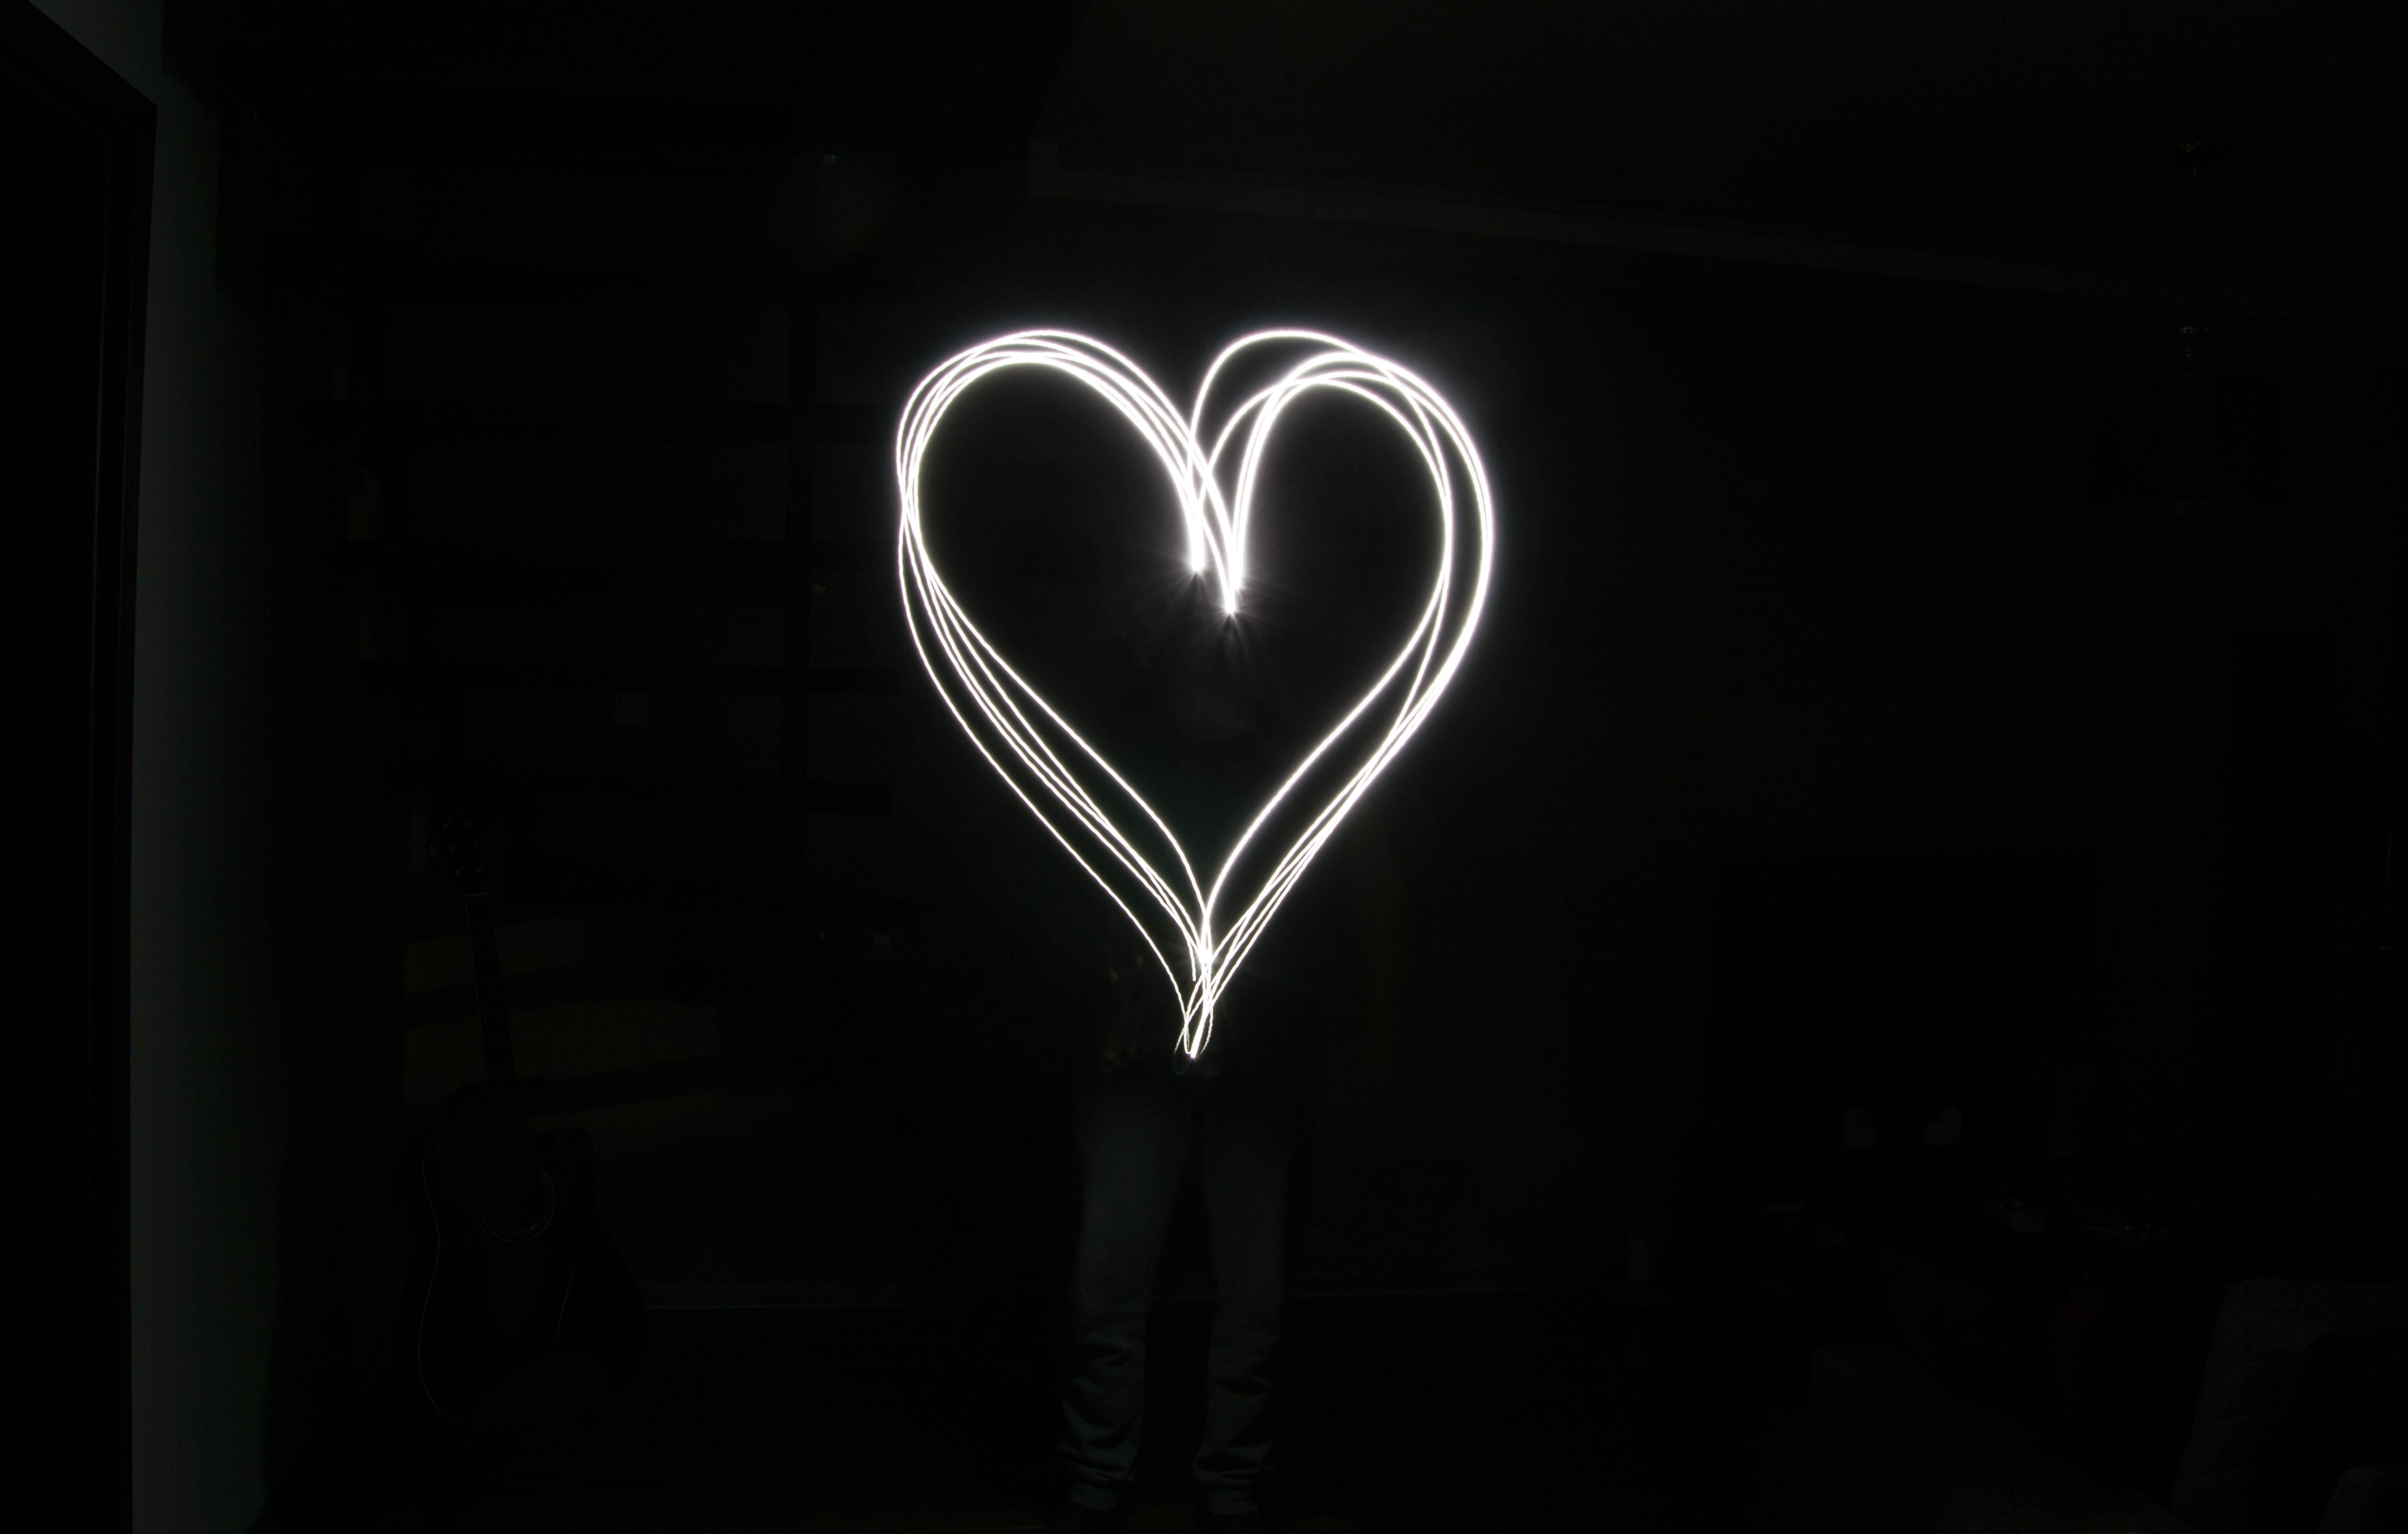 Heart Black And White Wallpapers Top Free Heart Black And White Backgrounds Wallpaperaccess